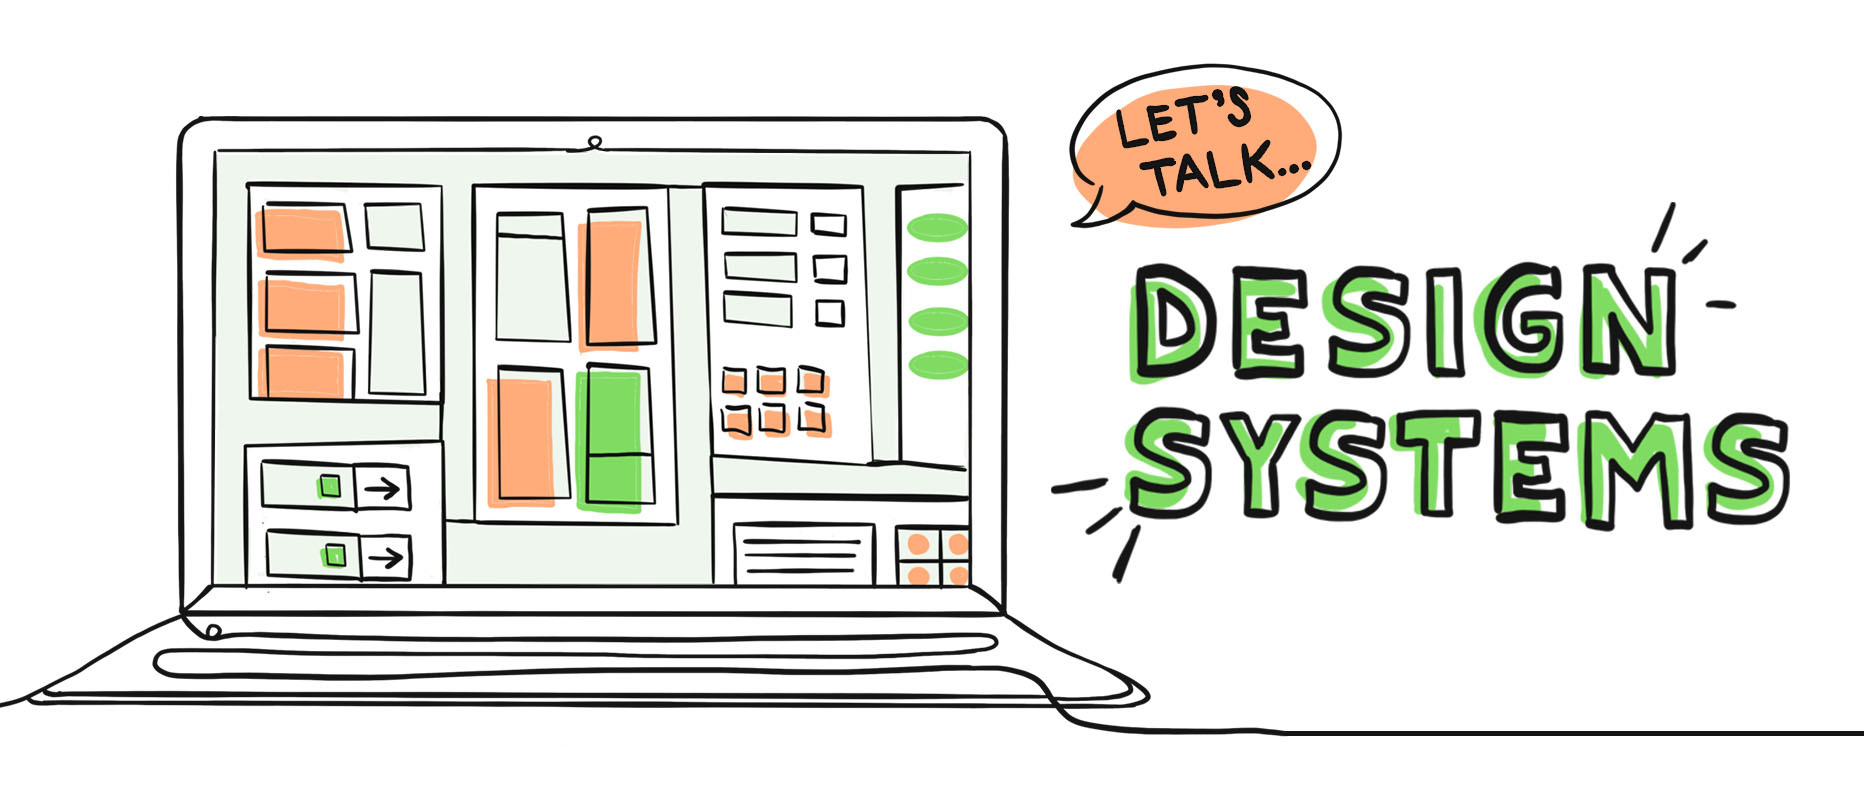 Let's Talk Design Systems: A Visual Guide for Practical Business Use and Why You Need One